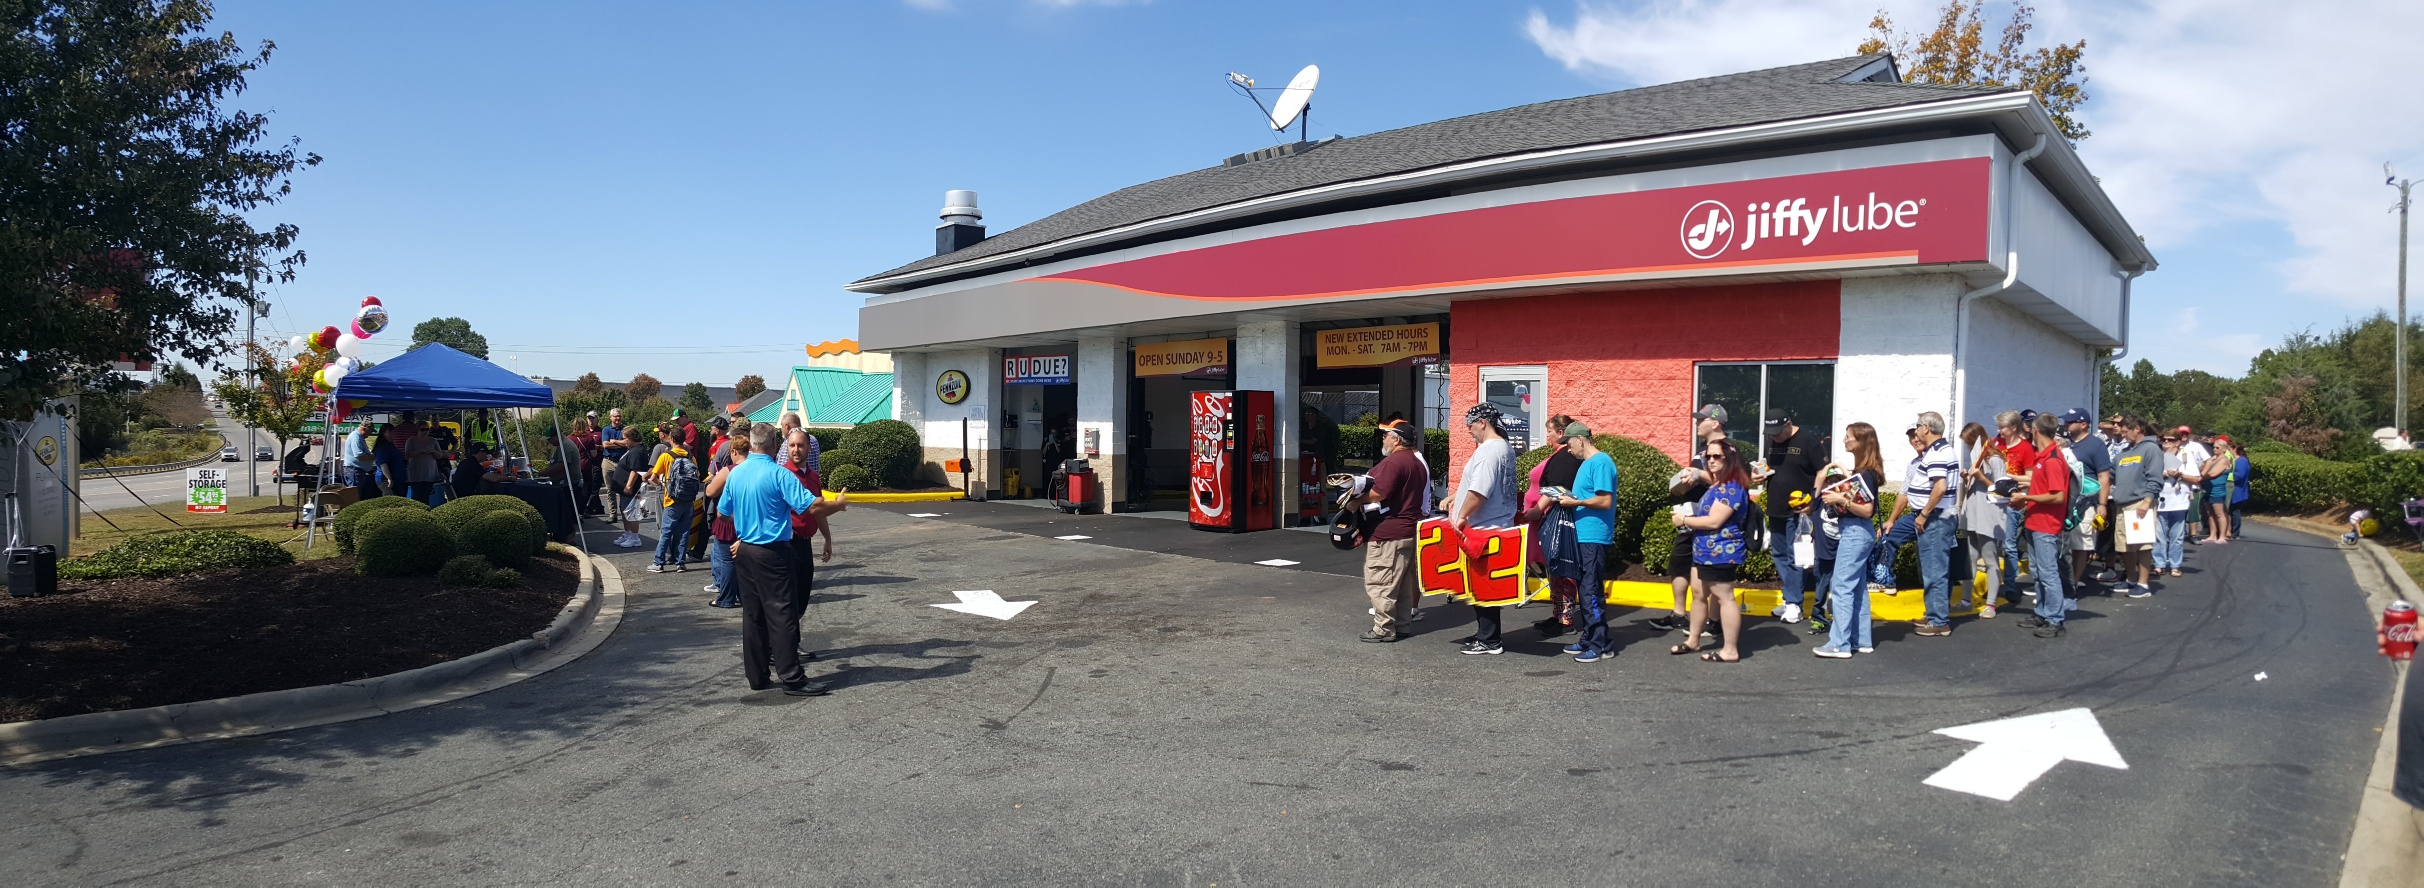 Fans wait at a local Jiffy Lube to meet NASCAR driver Joey Logano ahead of the Bank of America 500 in Charlotte, NC.